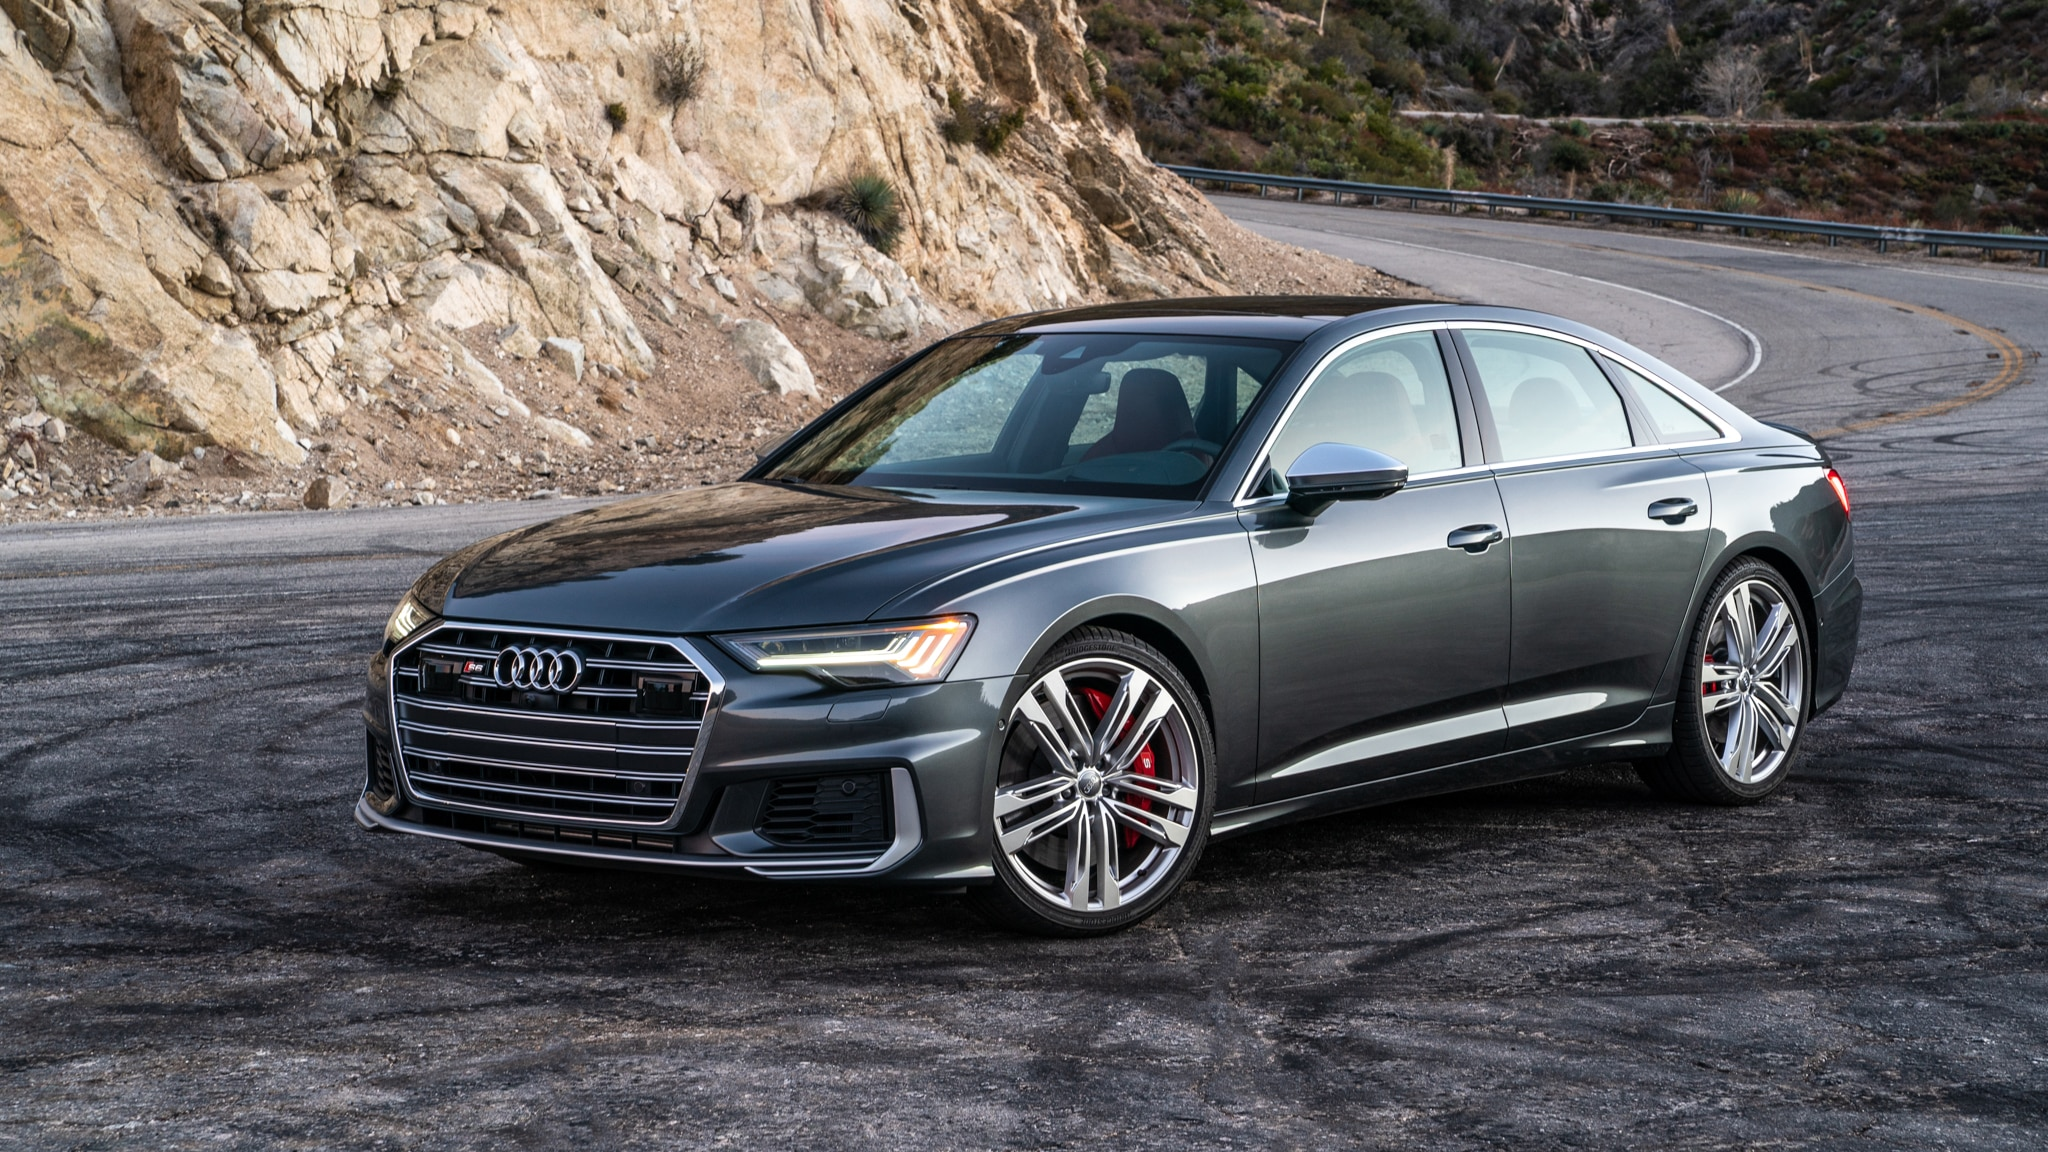 2020 Audi S6 Test Drive: The Luxury Performance Sedan You Really Want